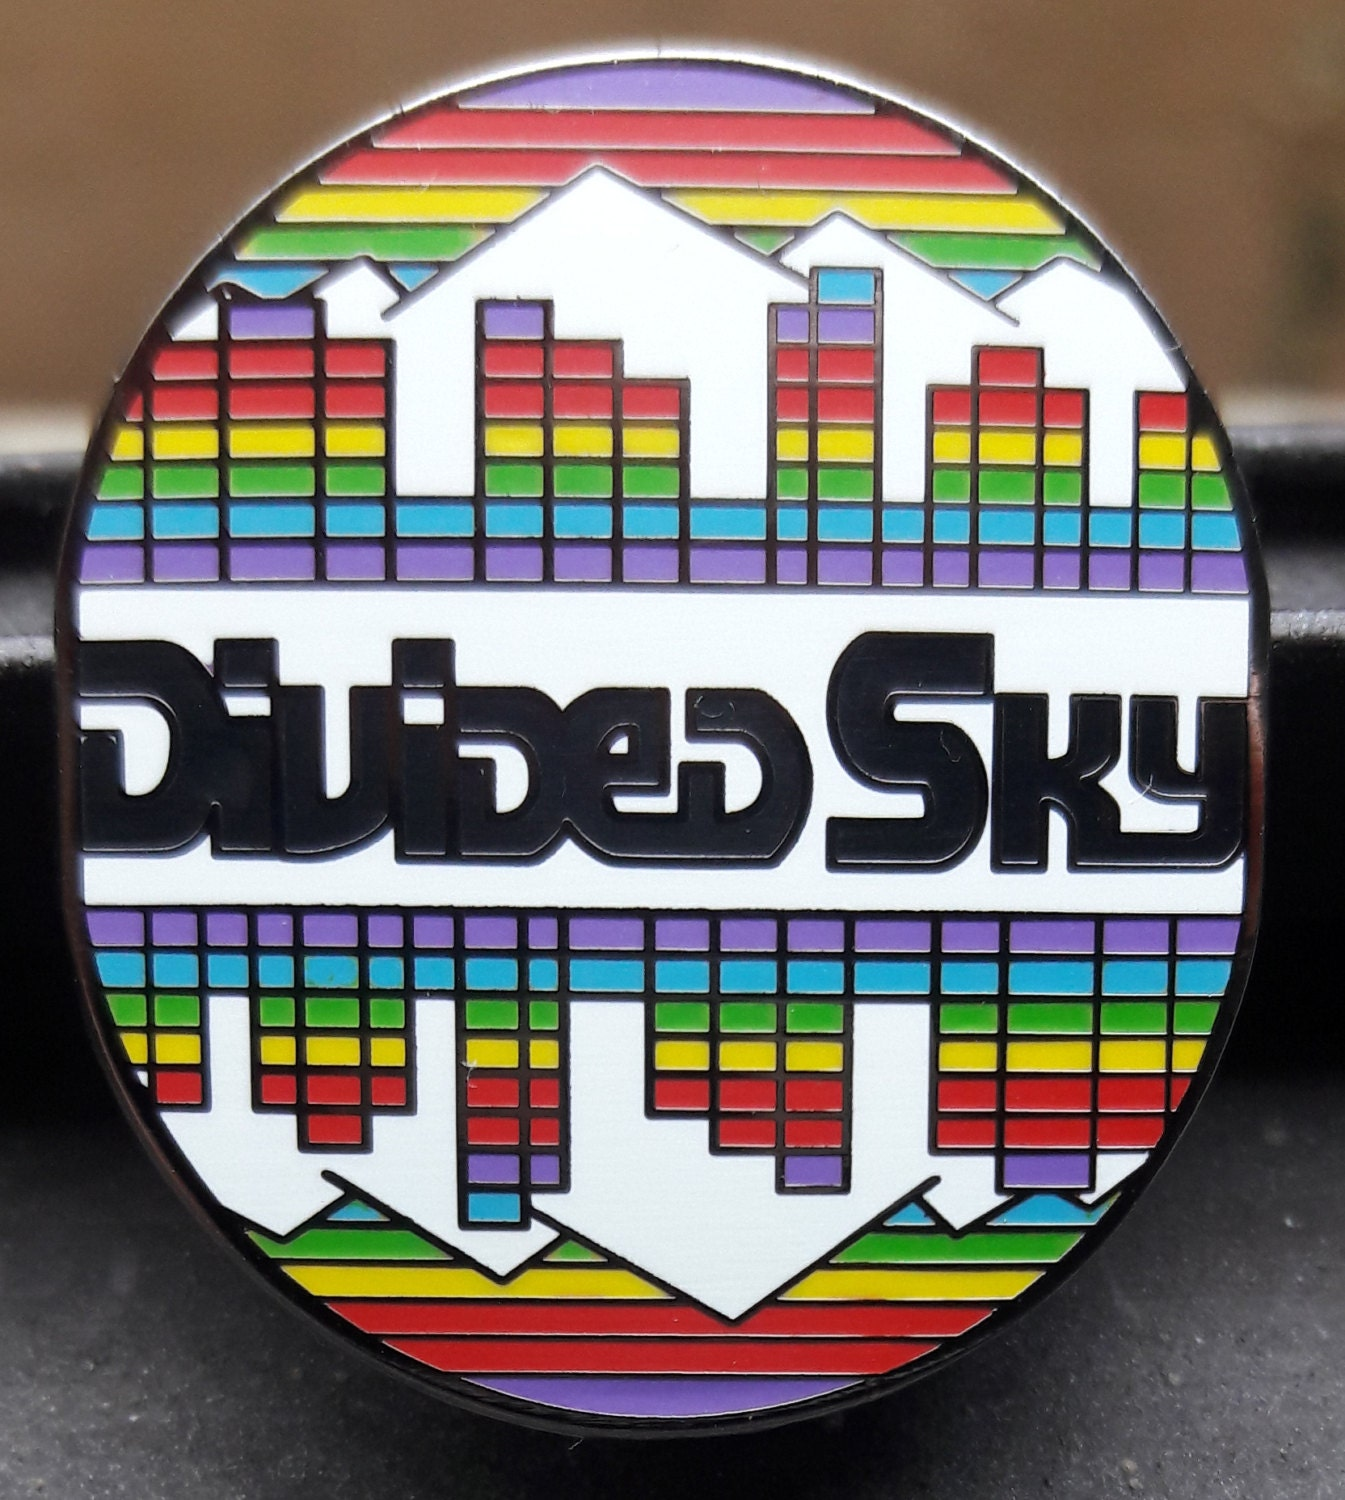 The Official Site Of The Denver Nuggets: Divided Sky PHiSH Pin Divided Sky Denver Nuggets PHiSH Pin